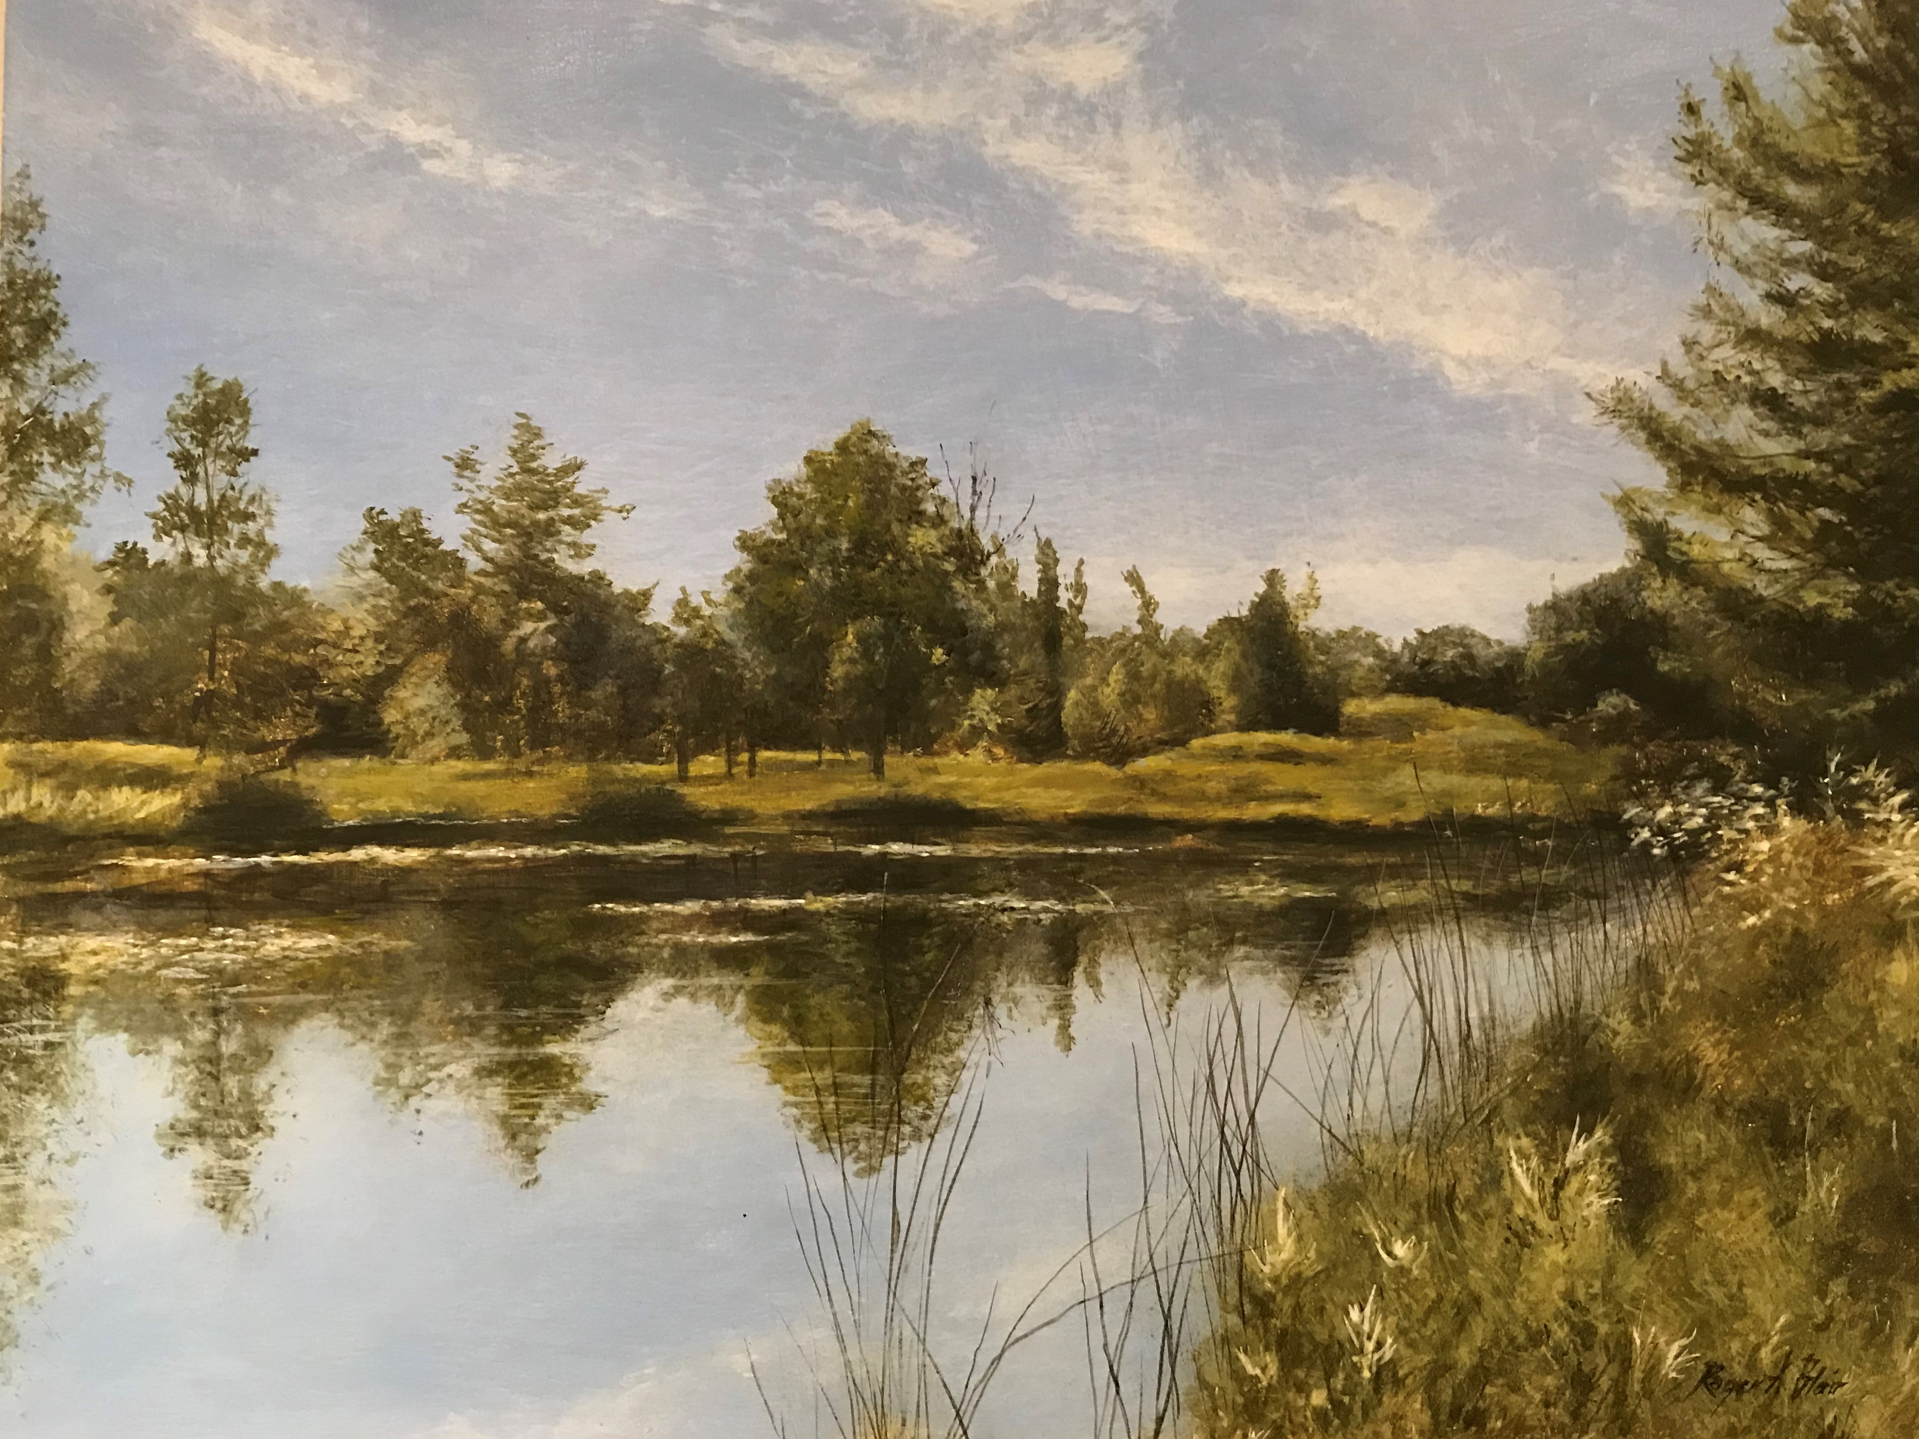 Across the Pond by Roger Blair